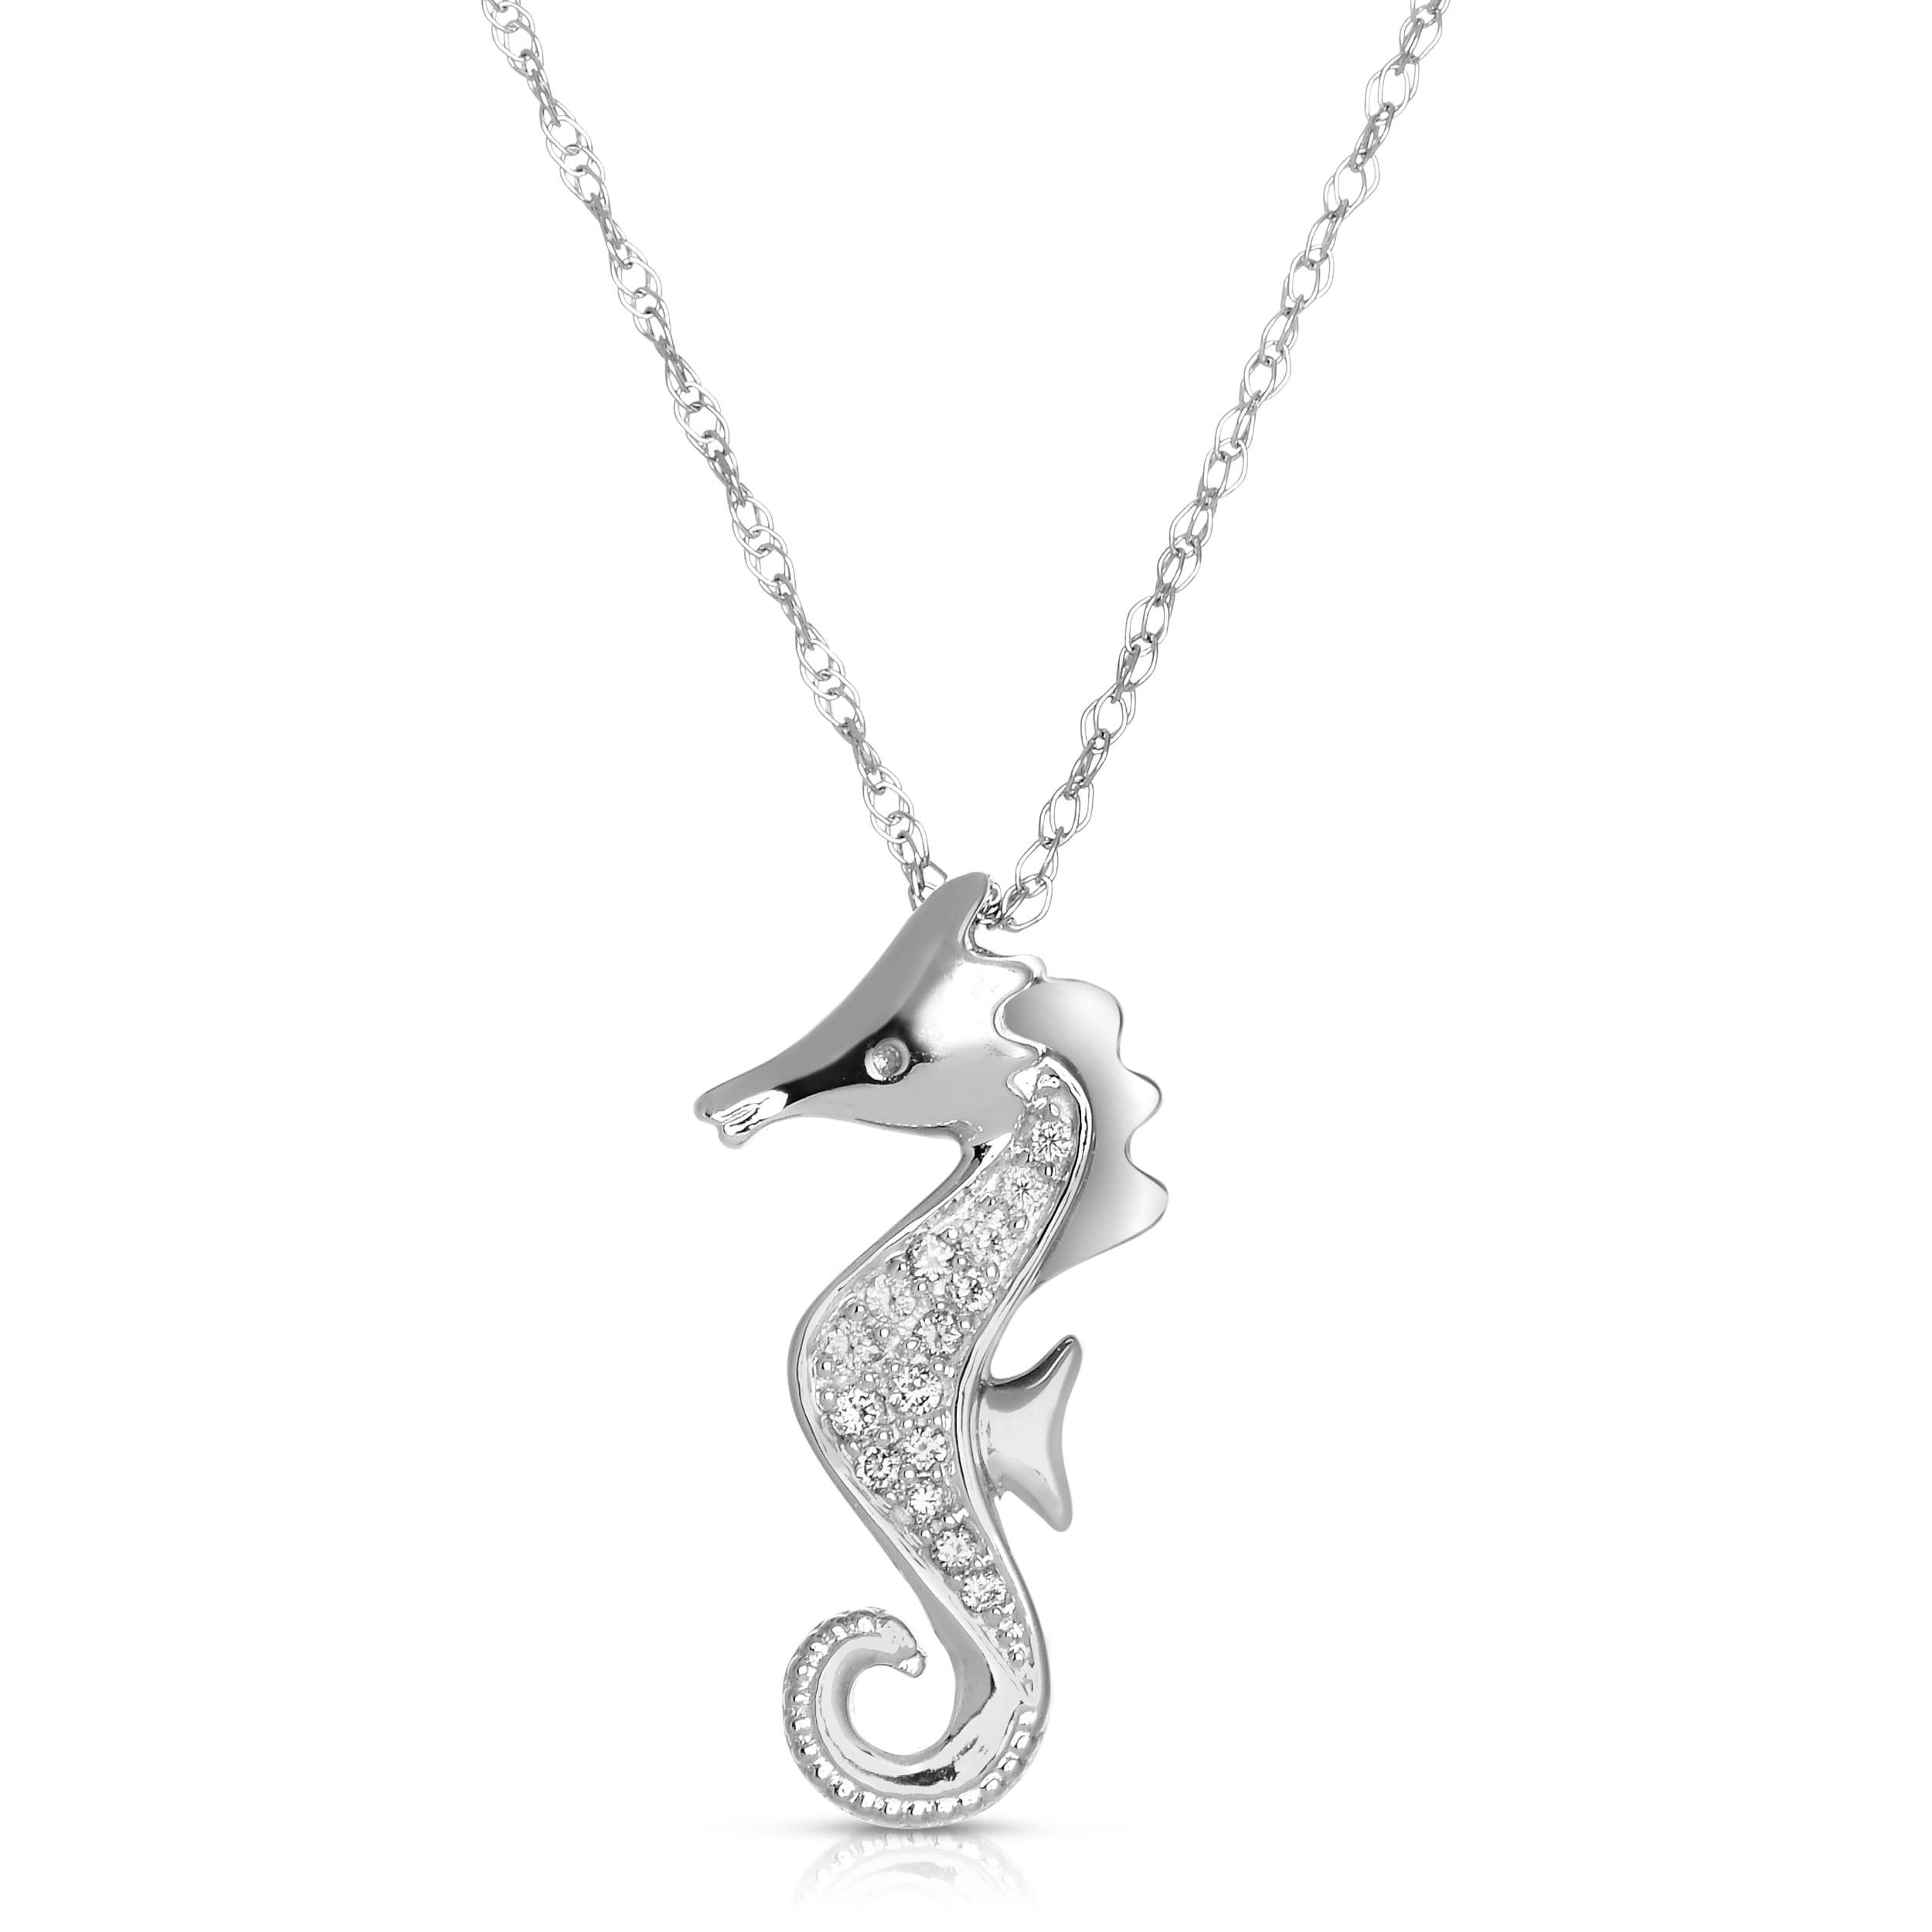 necklace silver jewelry cosanuova turquoise seahorse necklaces